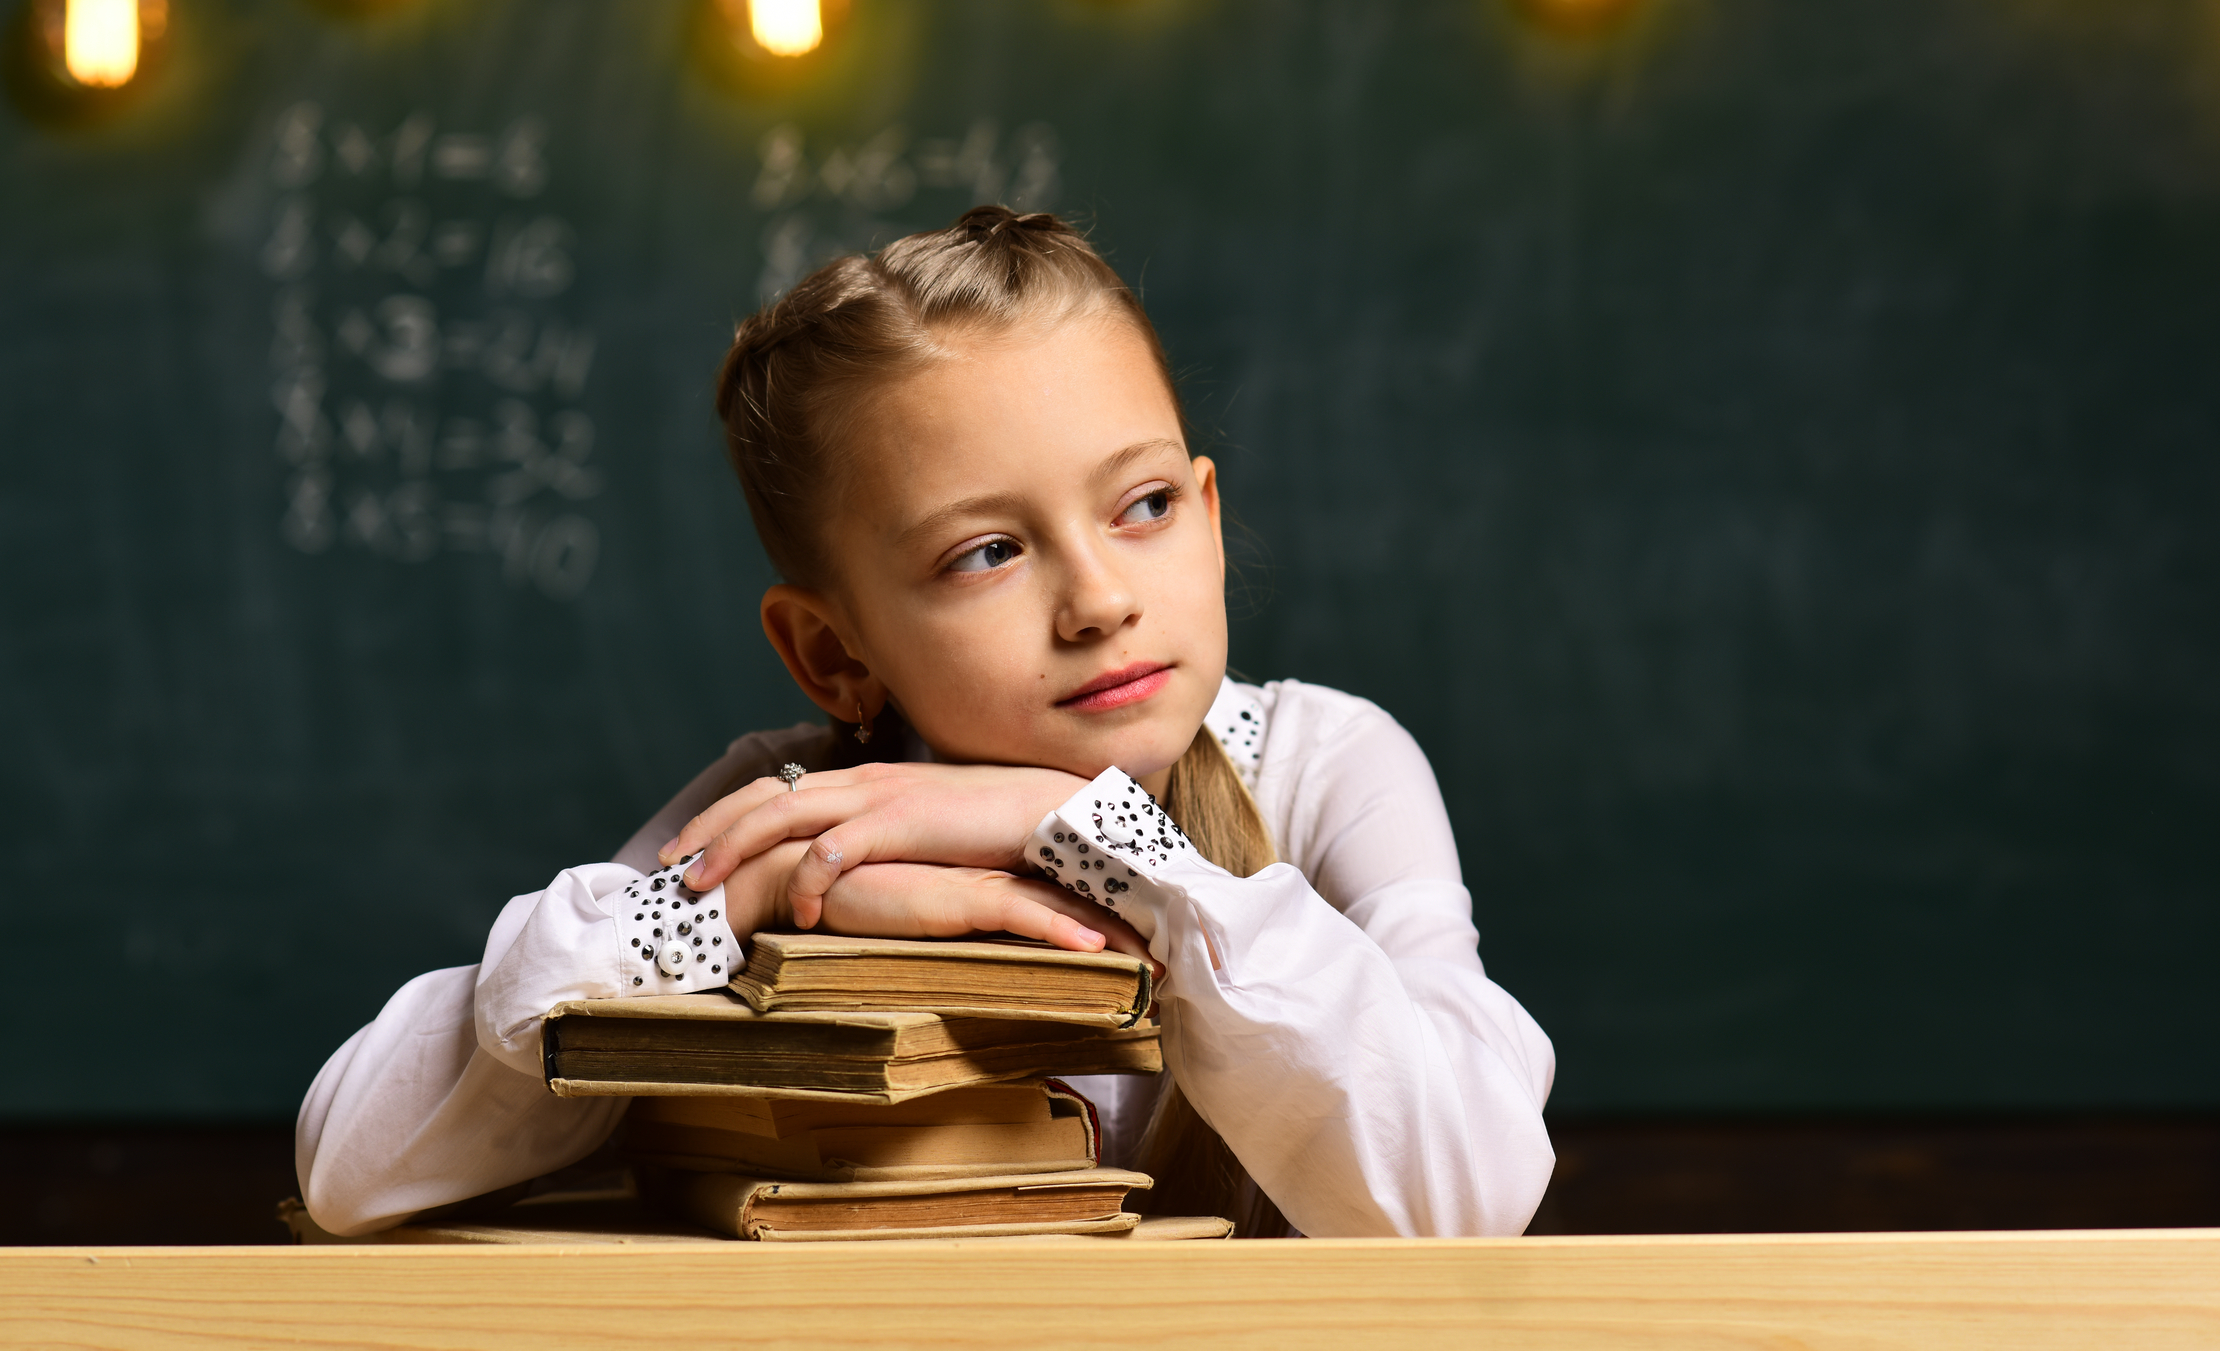 girl and book